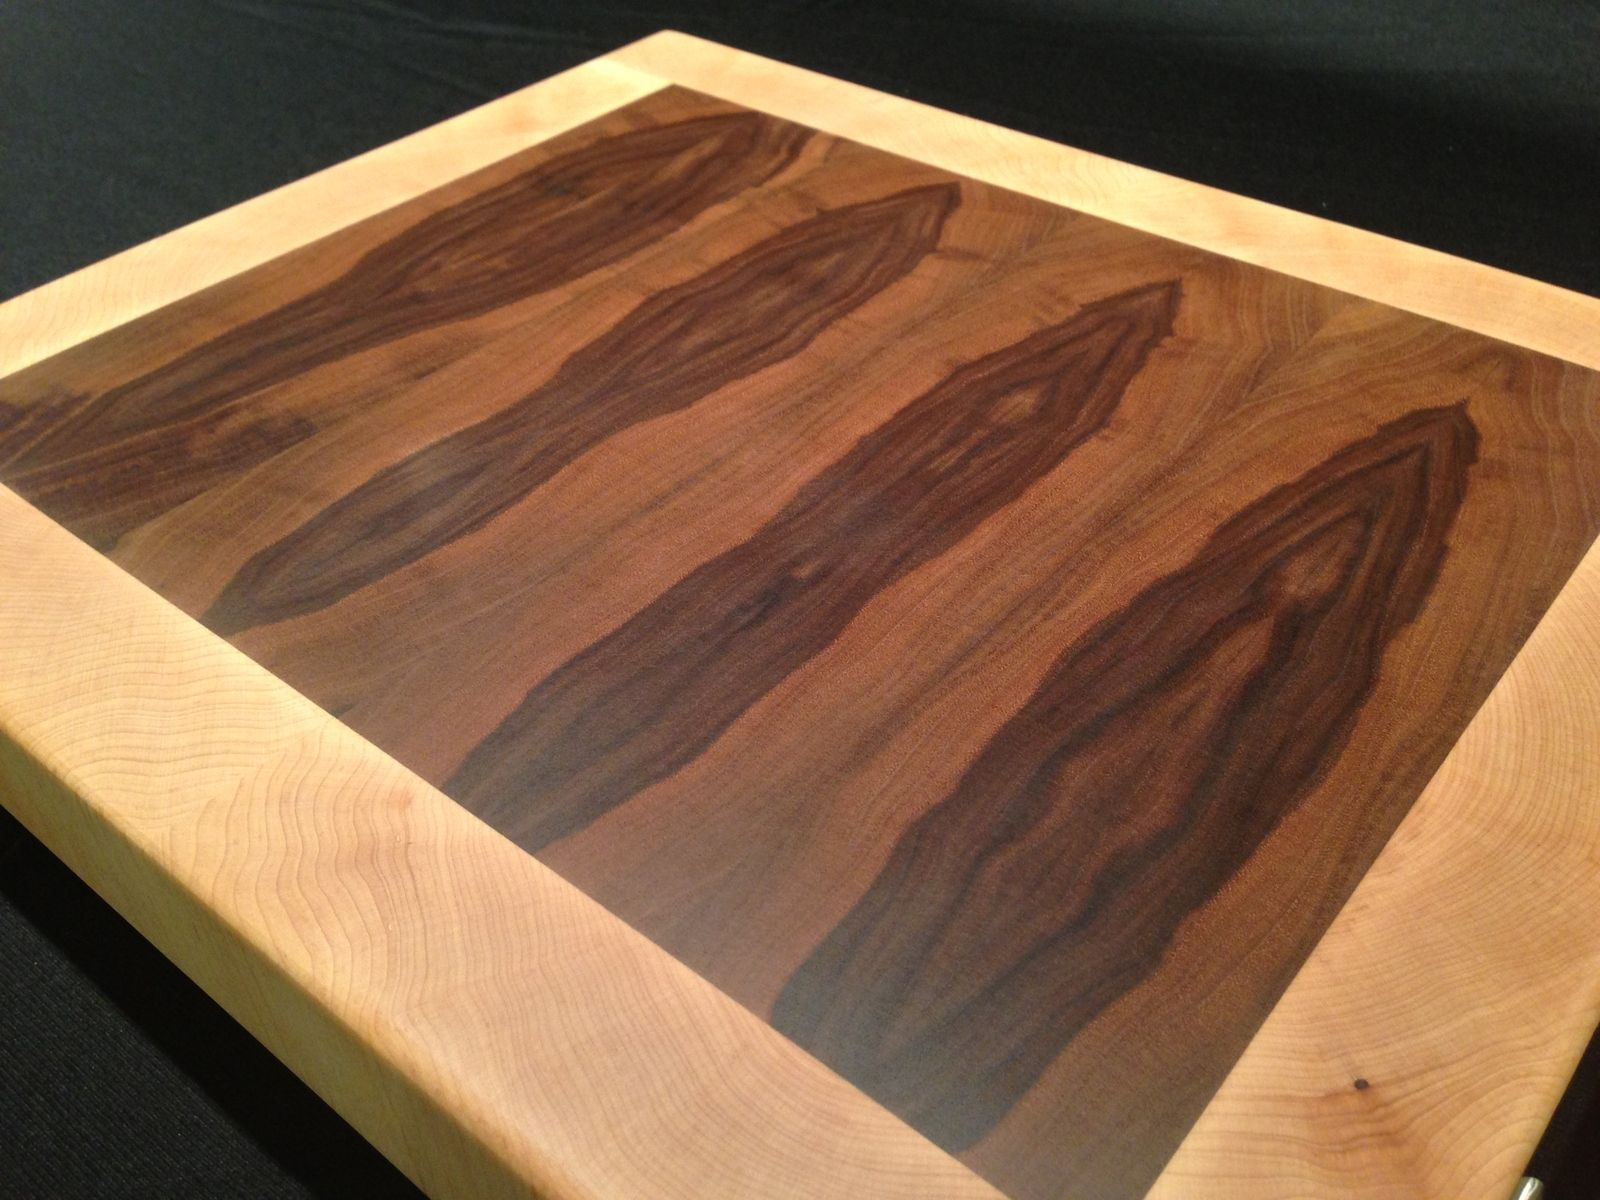 Uncategorized Custom Wooden Cutting Boards custom end grain cutting boards by magnolia place woodworks made boards